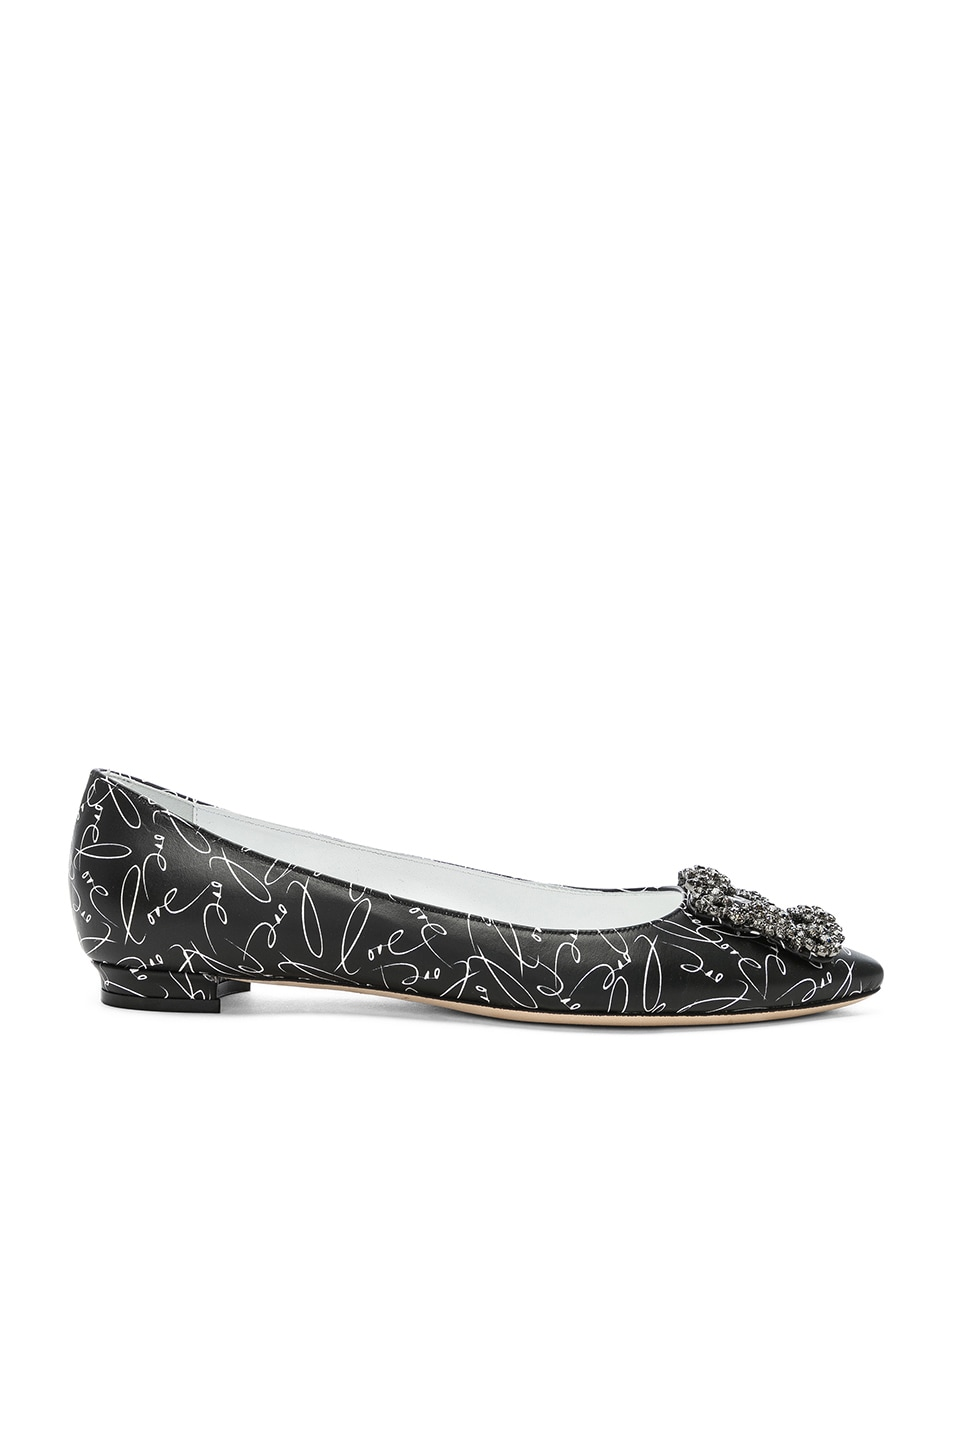 Image 1 of Manolo Blahnik A Decade of Love Hangisi Flat in Black